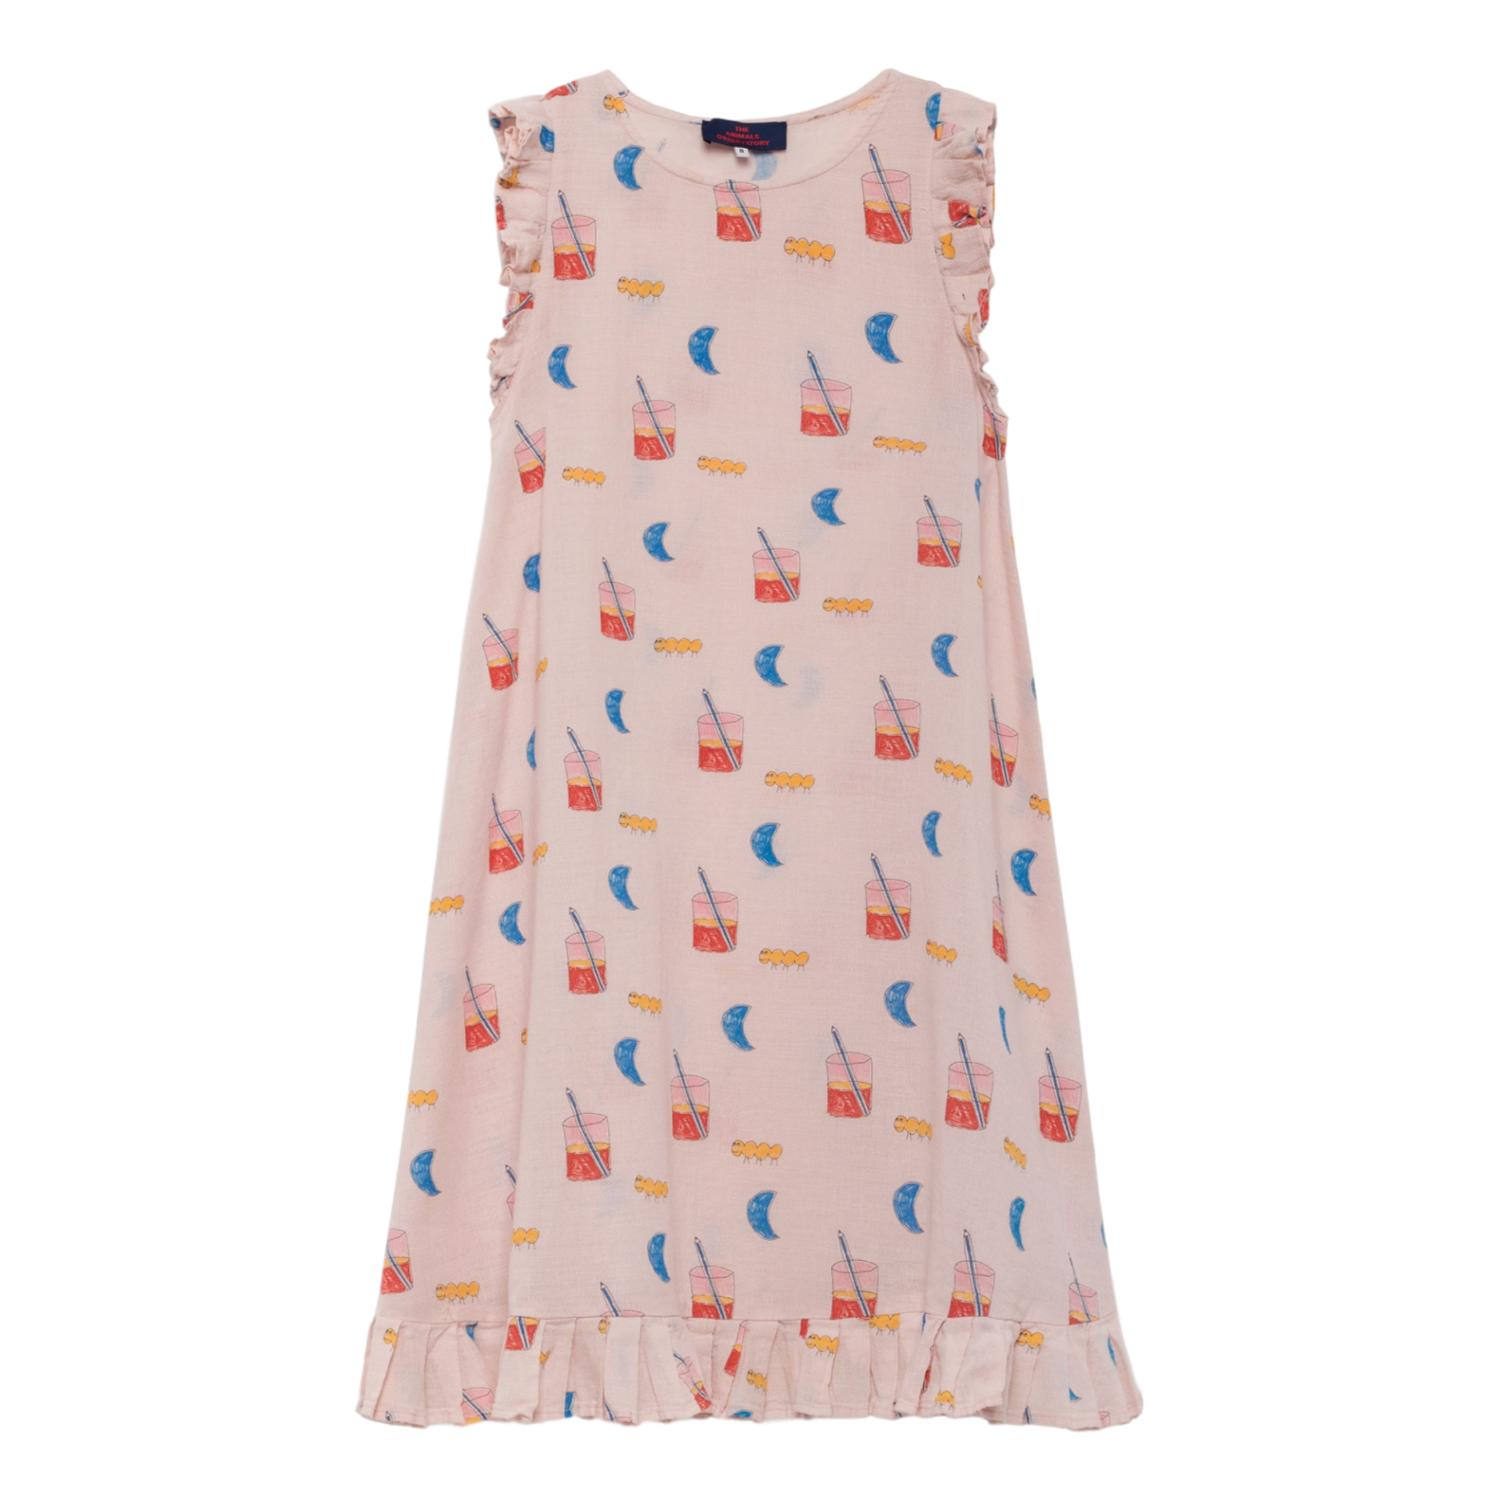 THE ANIMALS OBSERVATORY - Quartz Glasses Cow Kids Dress